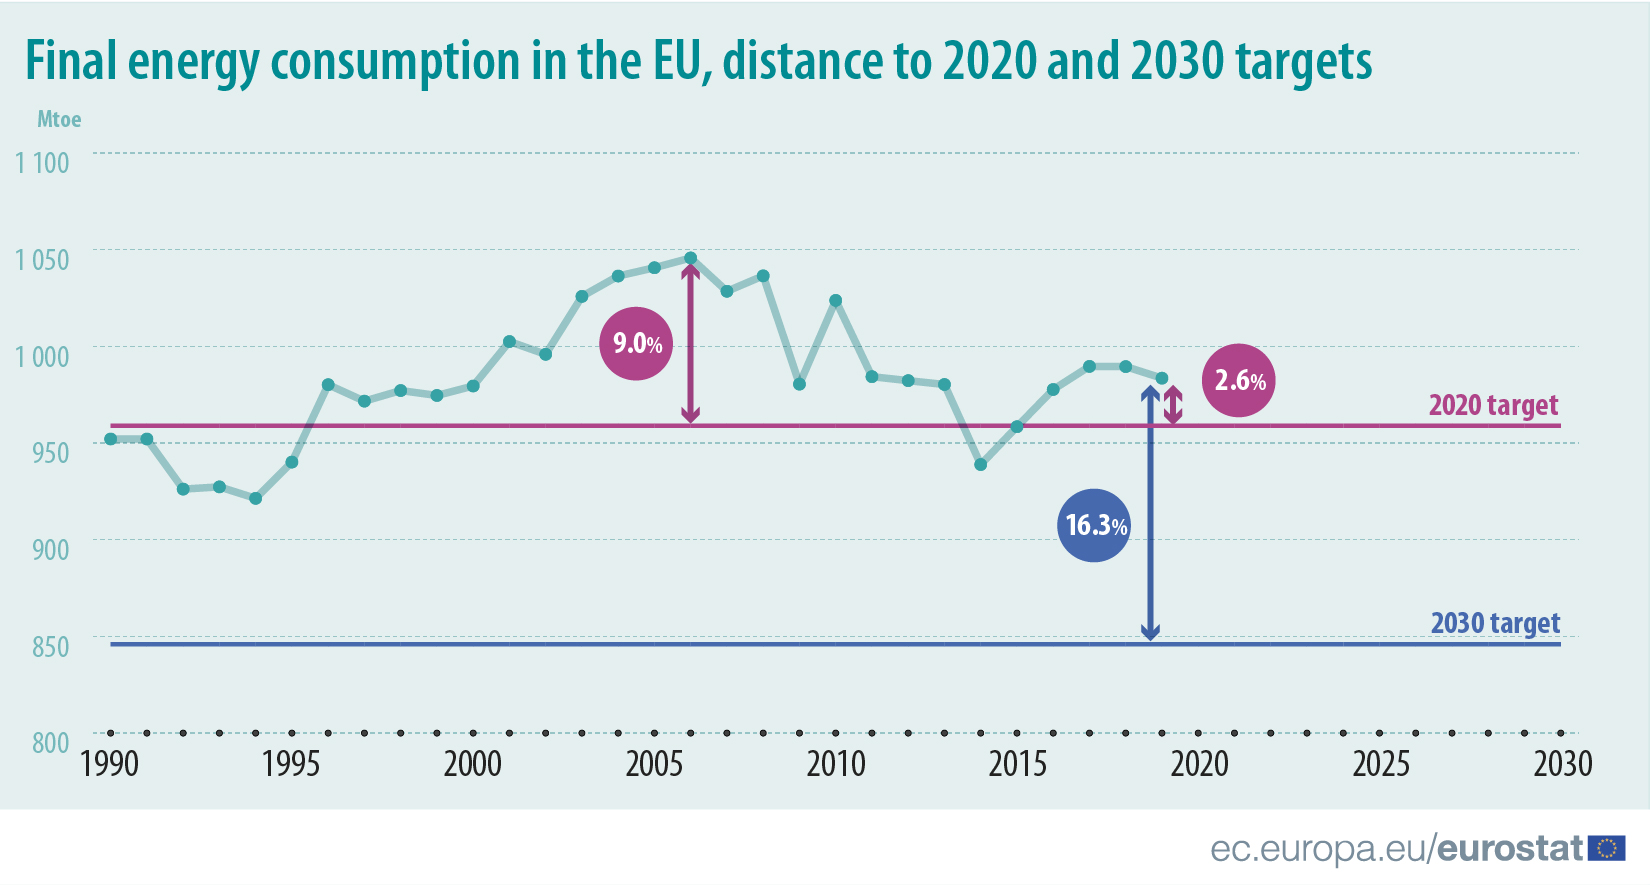 Final energy consumption in the EU, distance to 2020 and 2030 targets